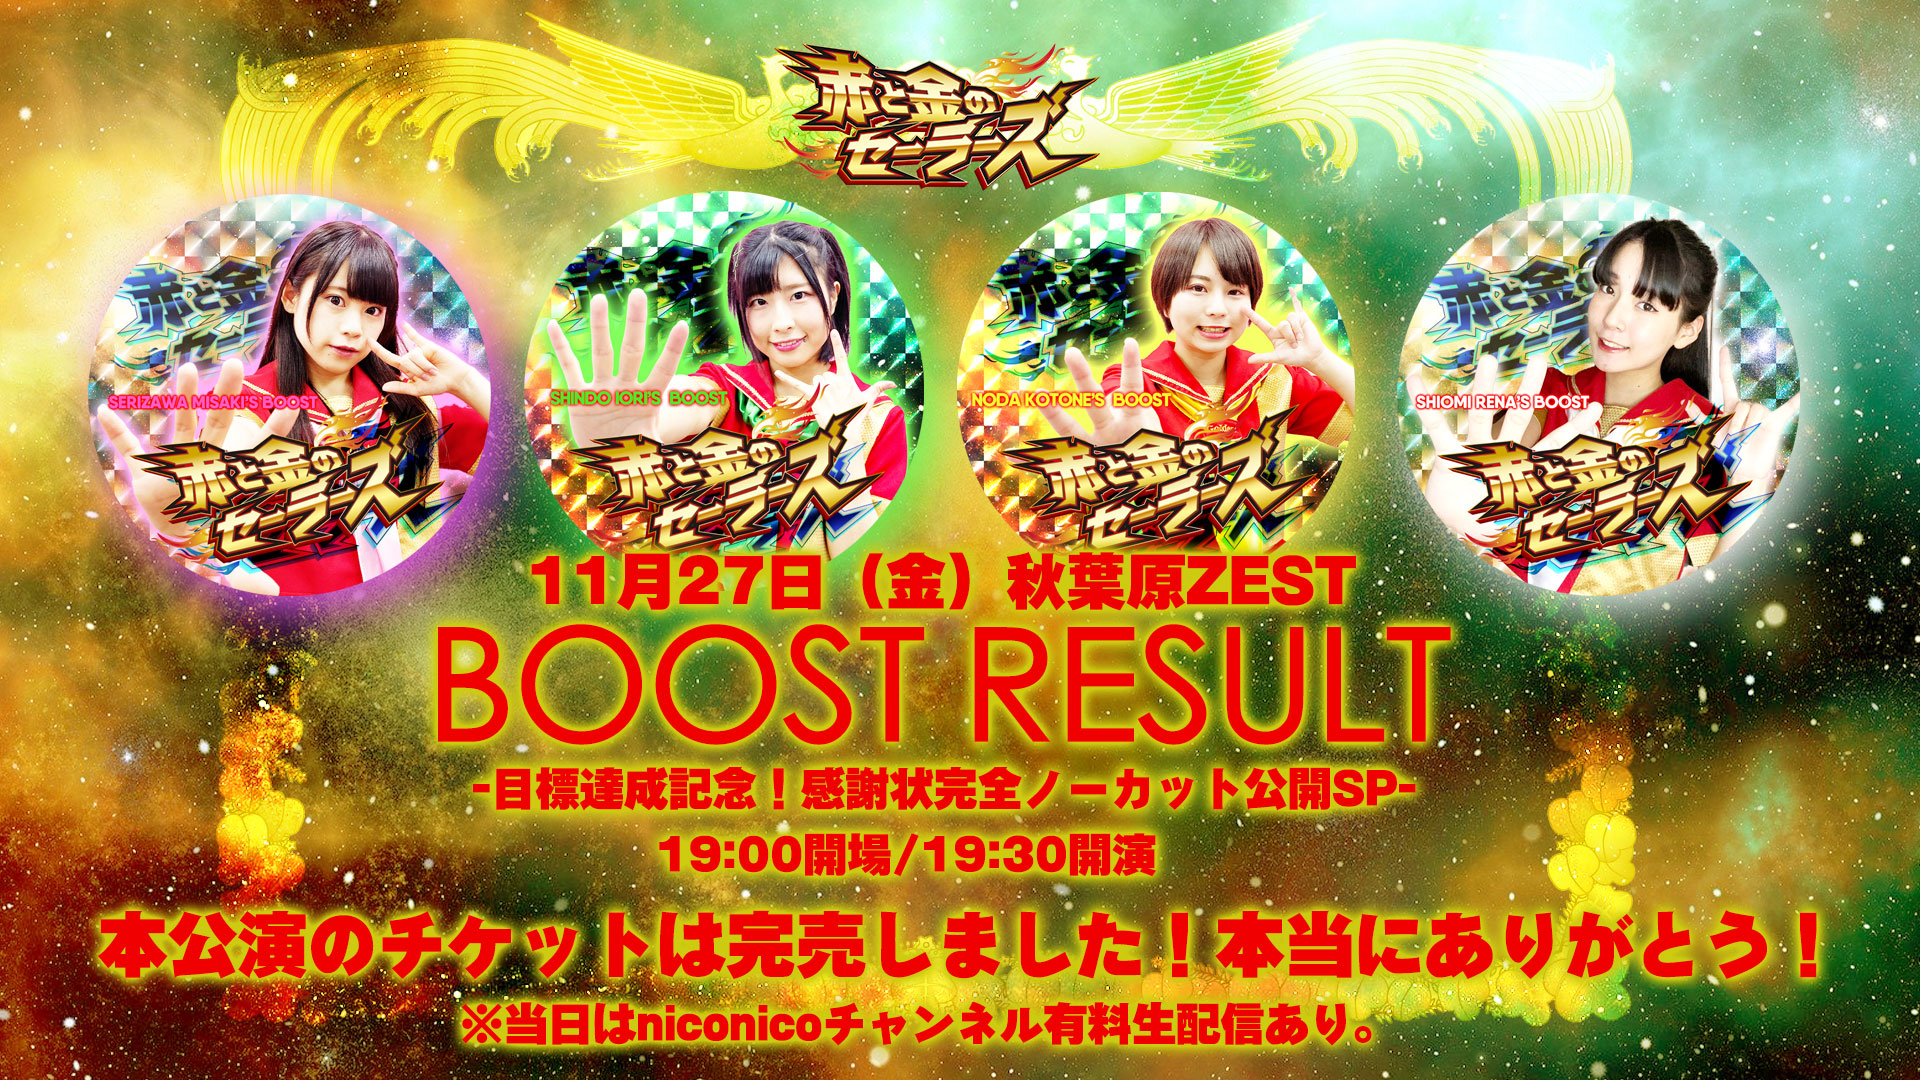 【LIVE】11月27日BOOST RESULT@秋葉原ZEST